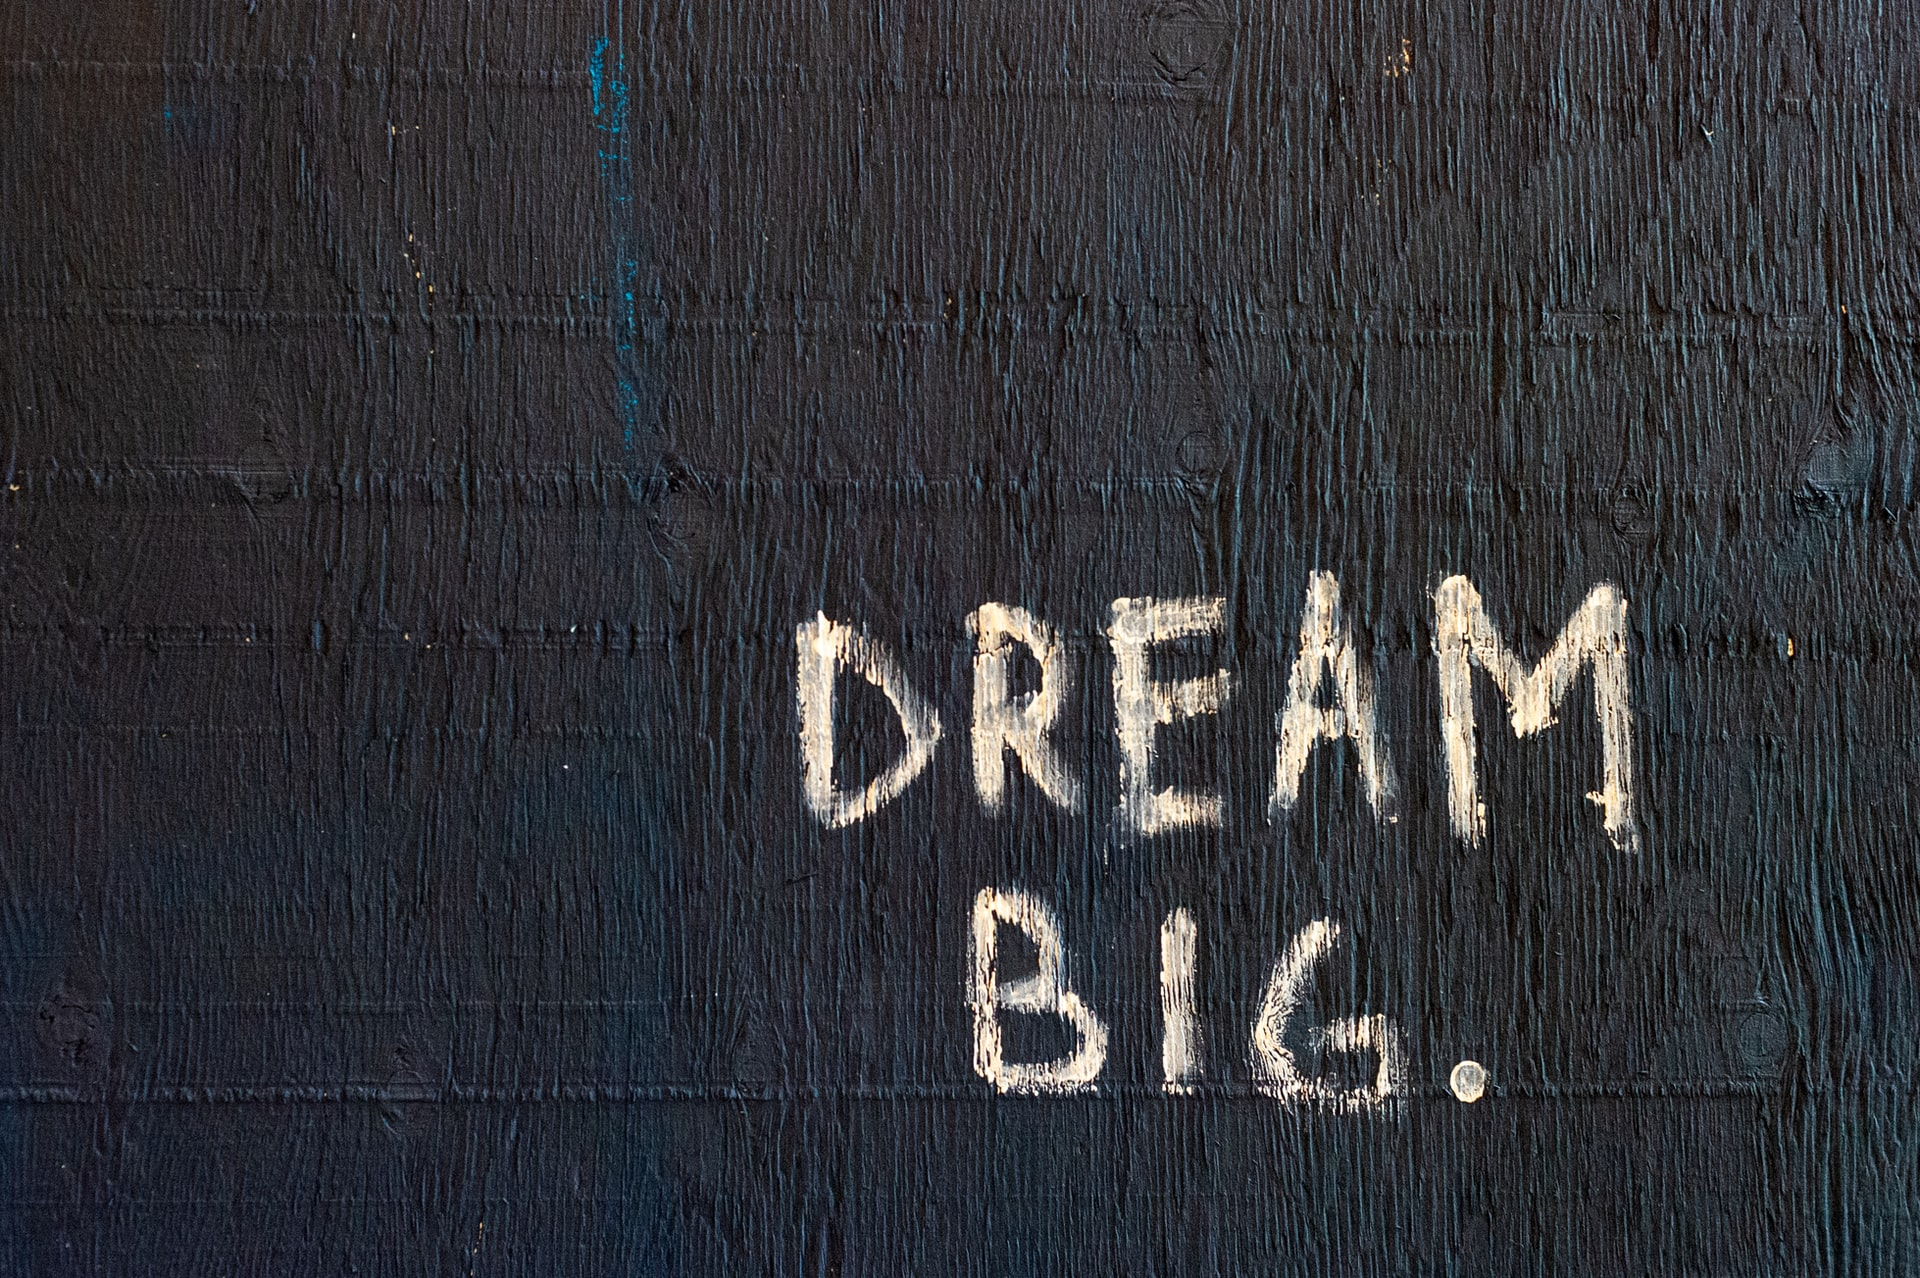 text that says dream big